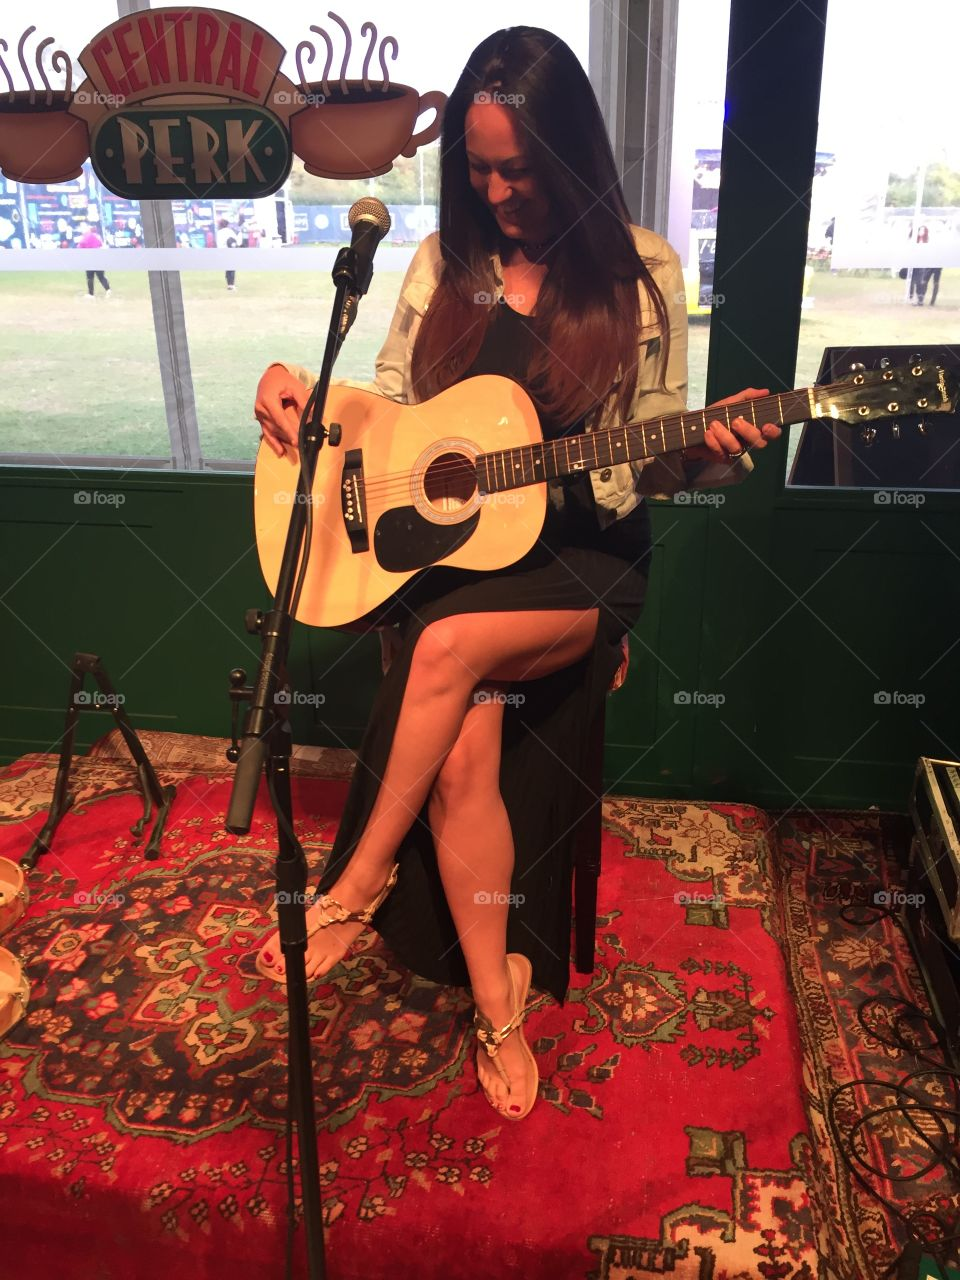 Friends recreation of phoebe playing guitar at central perk